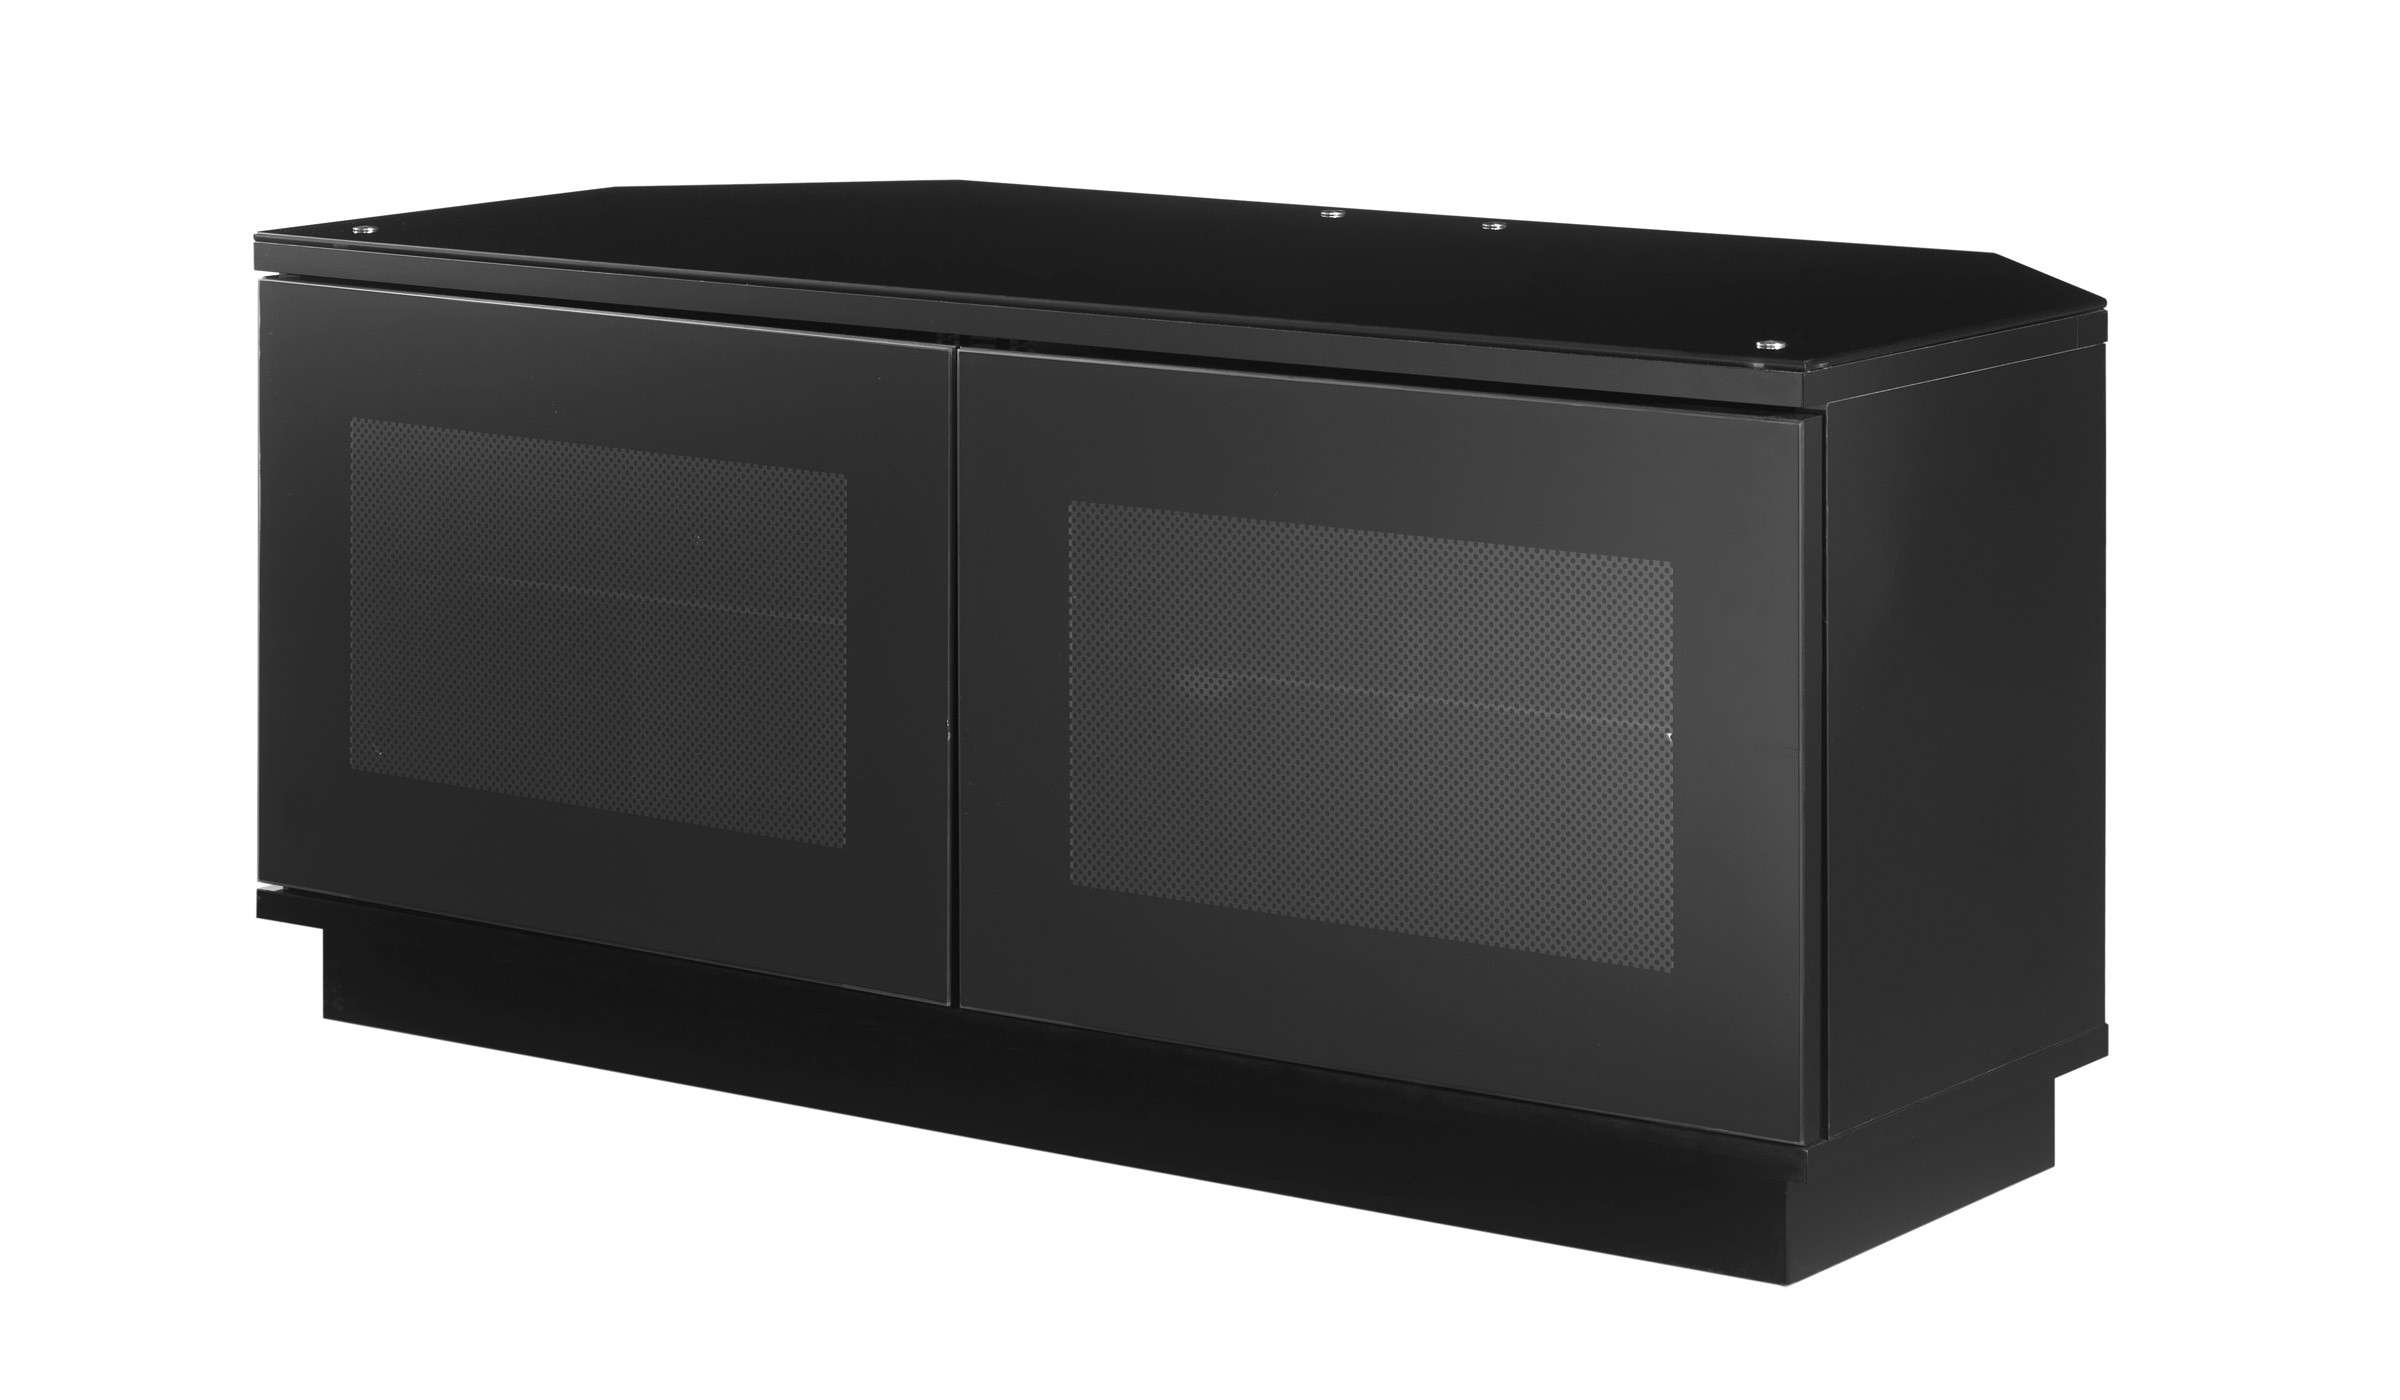 Small Black Tv Stand Cabinet With Door For Corner – Decofurnish Throughout Black Corner Tv Cabinets (View 17 of 20)